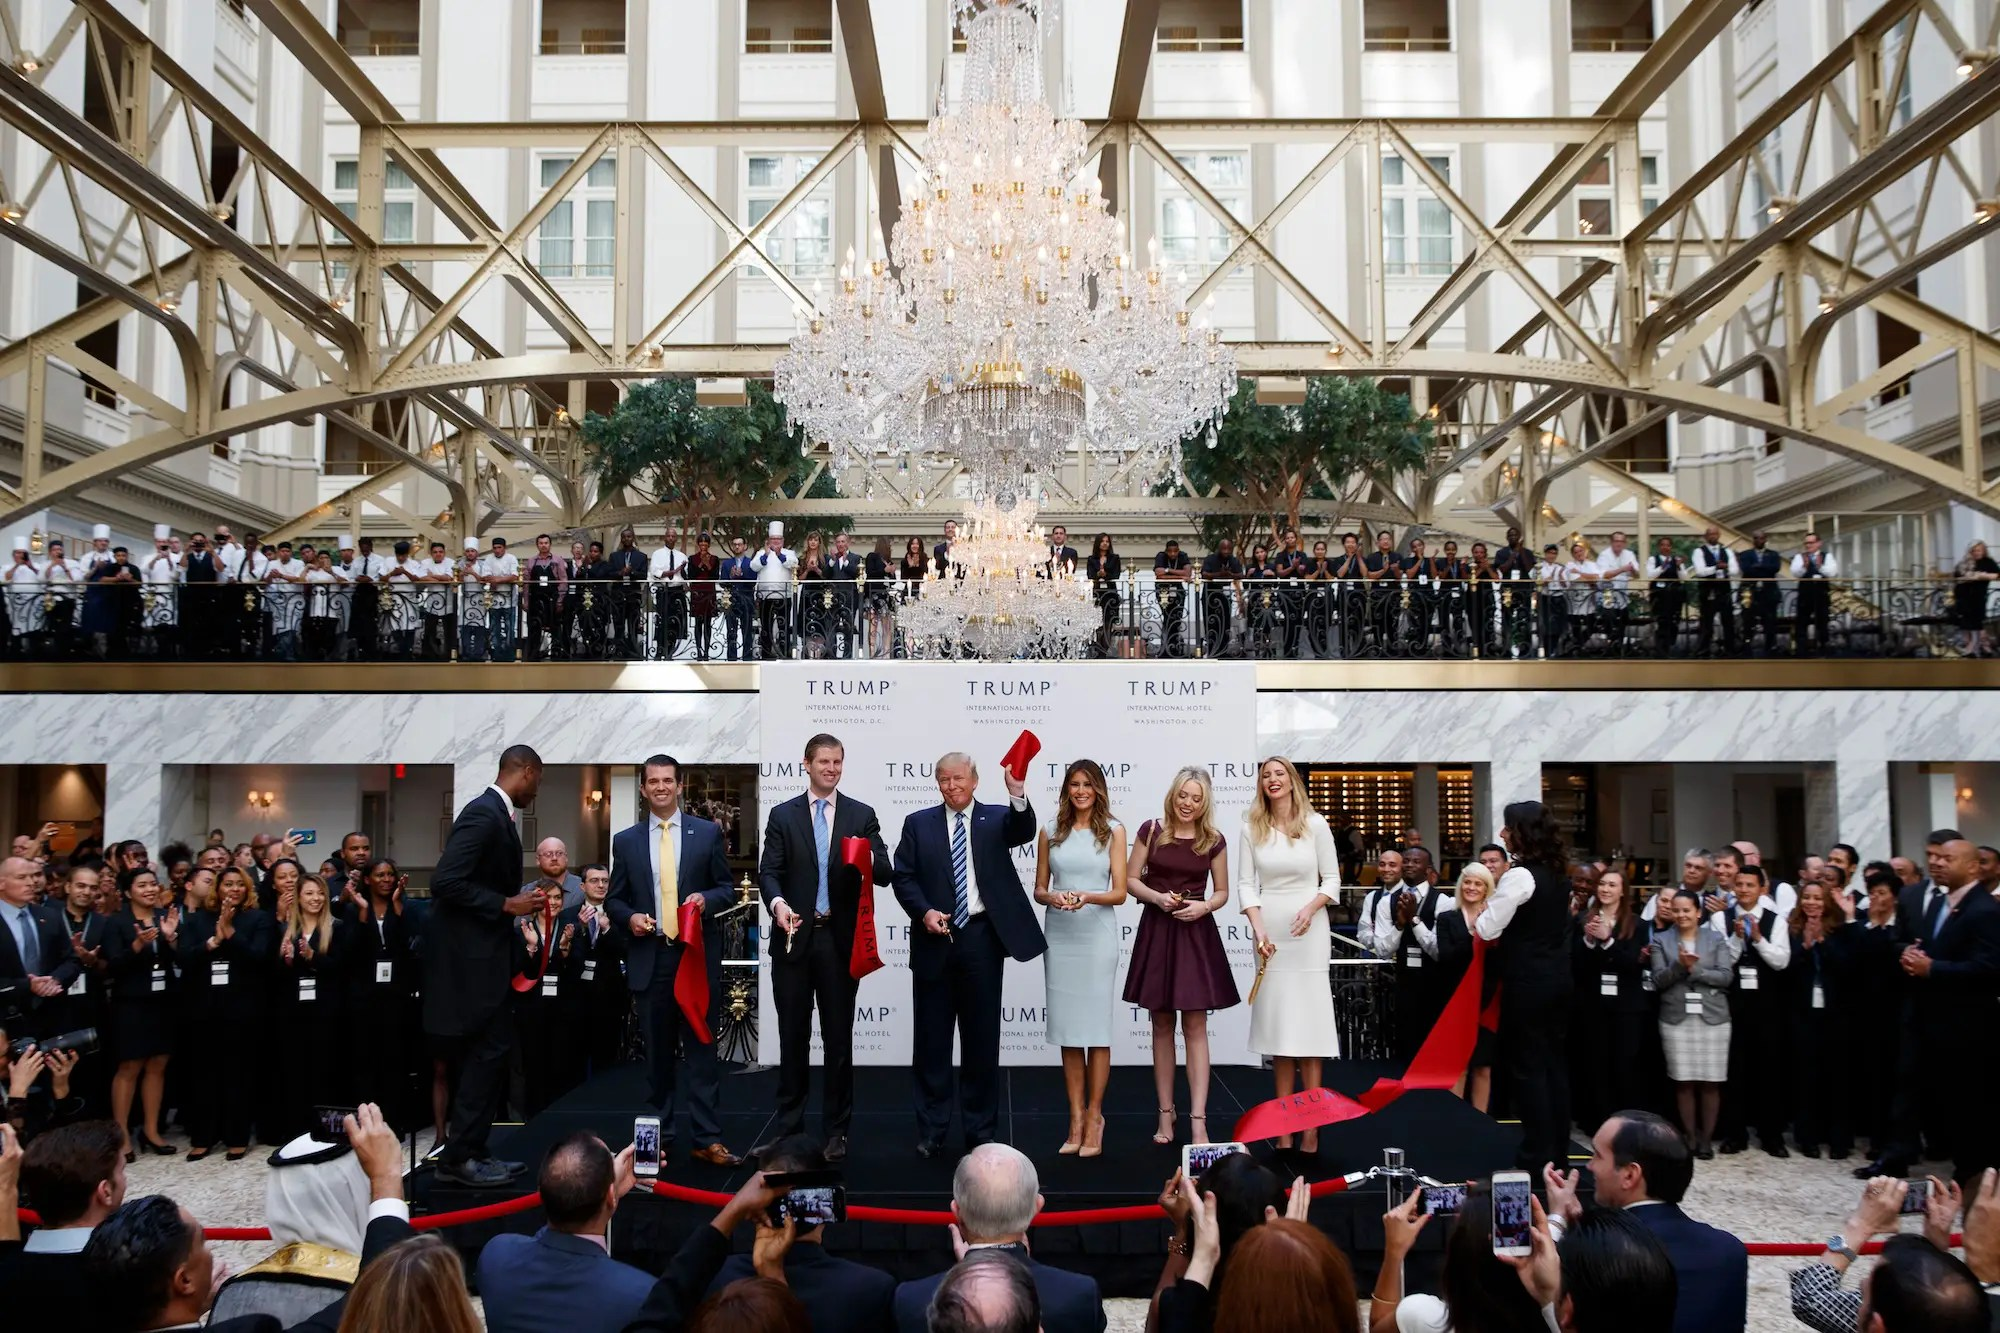 Trump's conflicts of interest